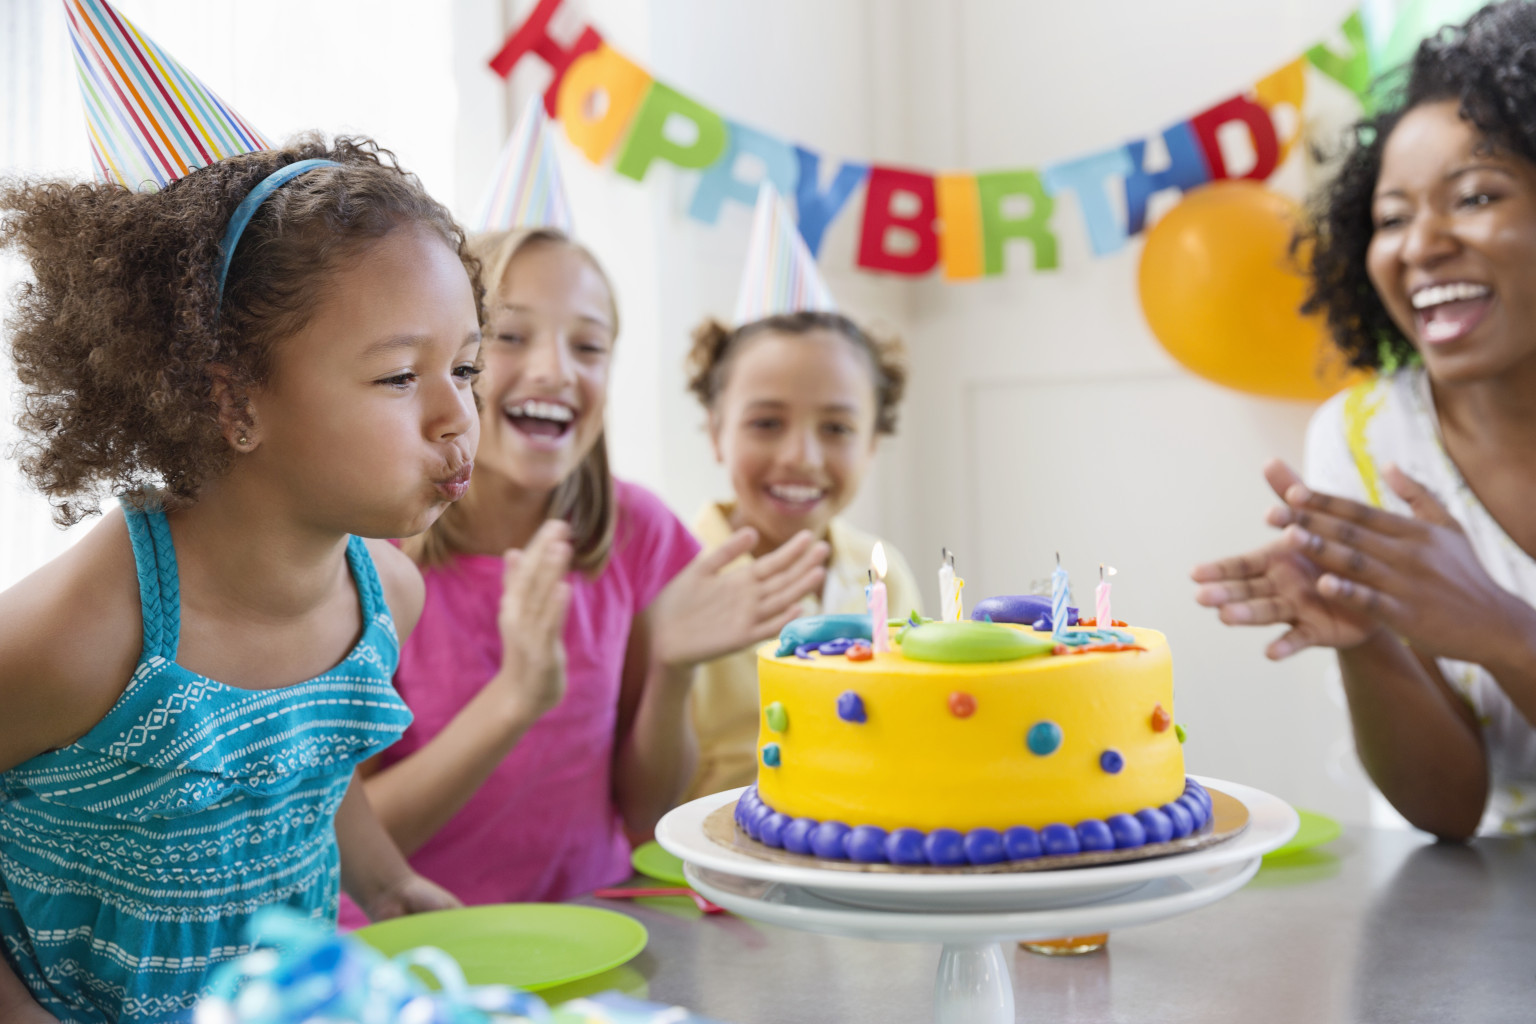 Best ideas about Kids Birthday Ideas . Save or Pin 5 Hot Trends for Kids Birthday Parties Now.